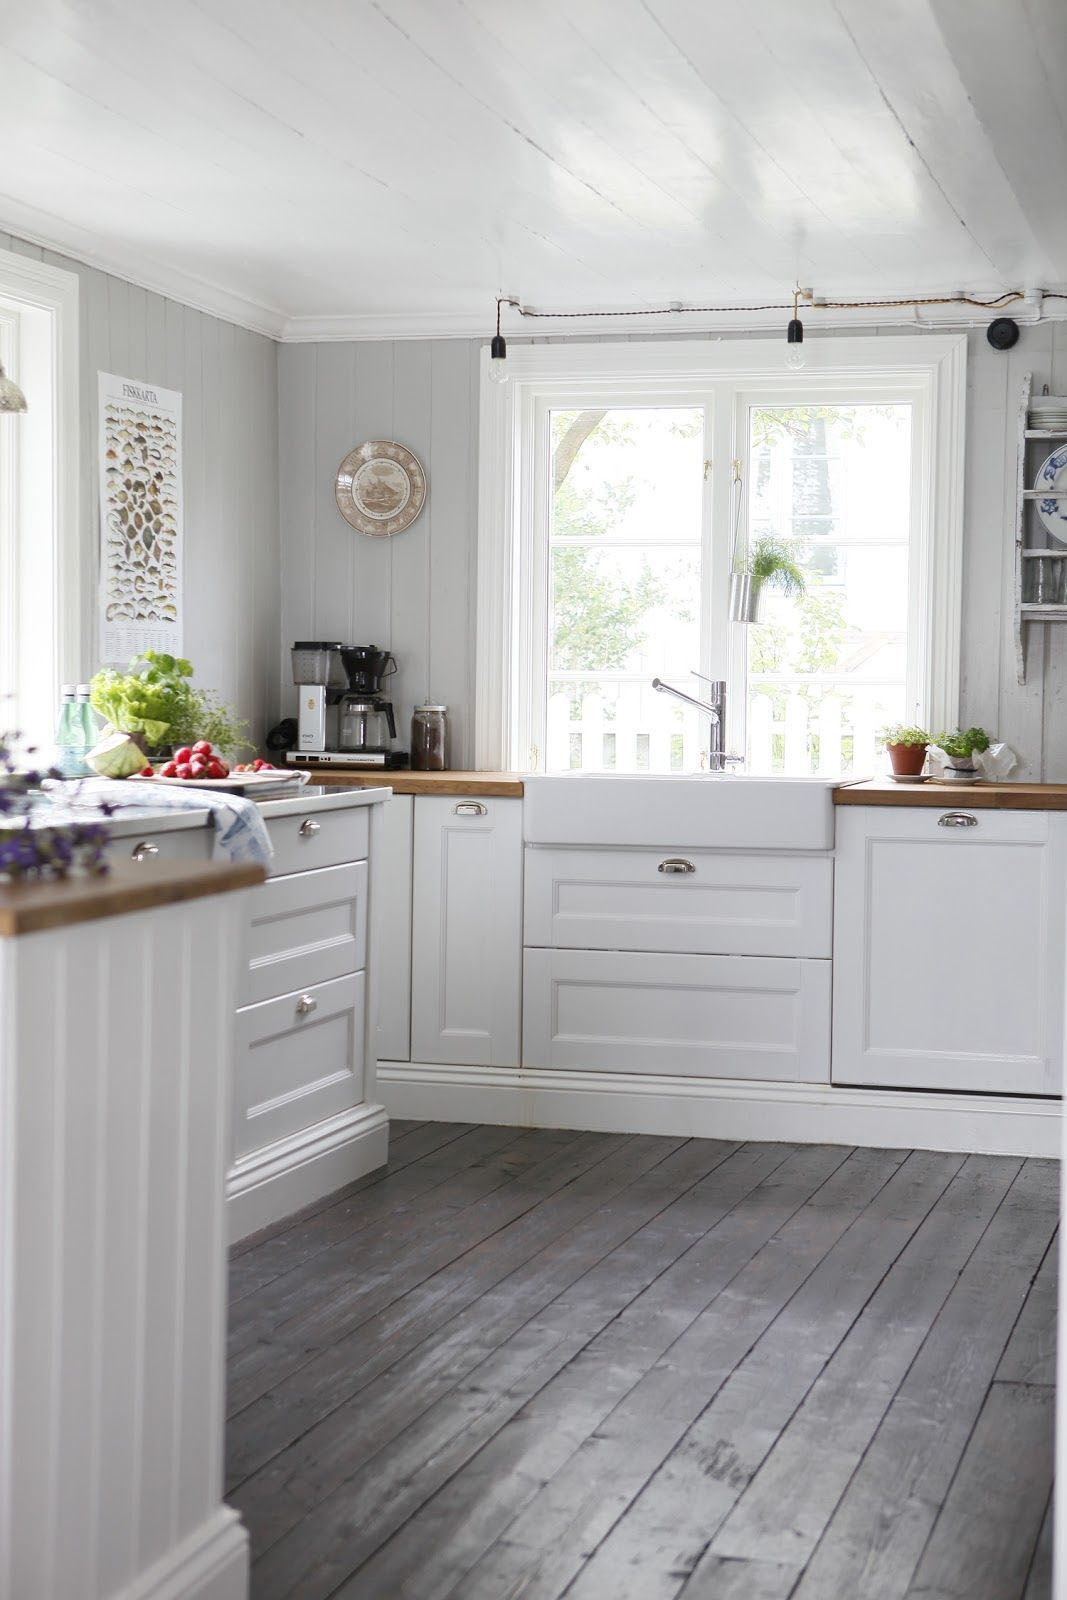 20 Nation Cooking Area Ideas As Well As Concepts Grey Kitchen